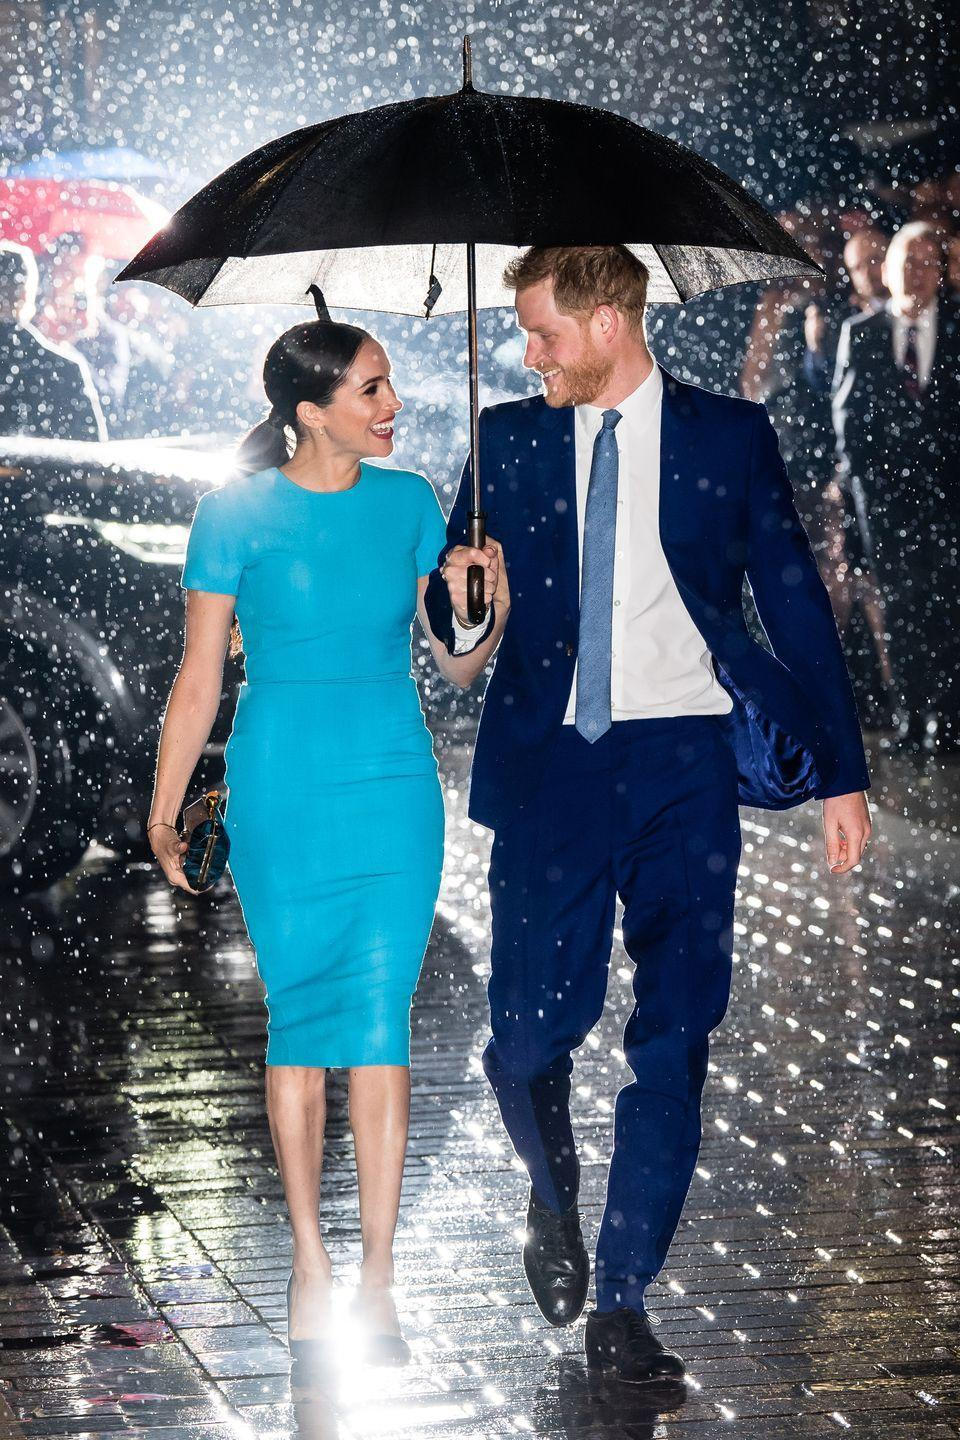 <p>The Duke and Duchess of Sussex smile at each other under an umbrella while walking to the Endeavor Fund Awards.</p>